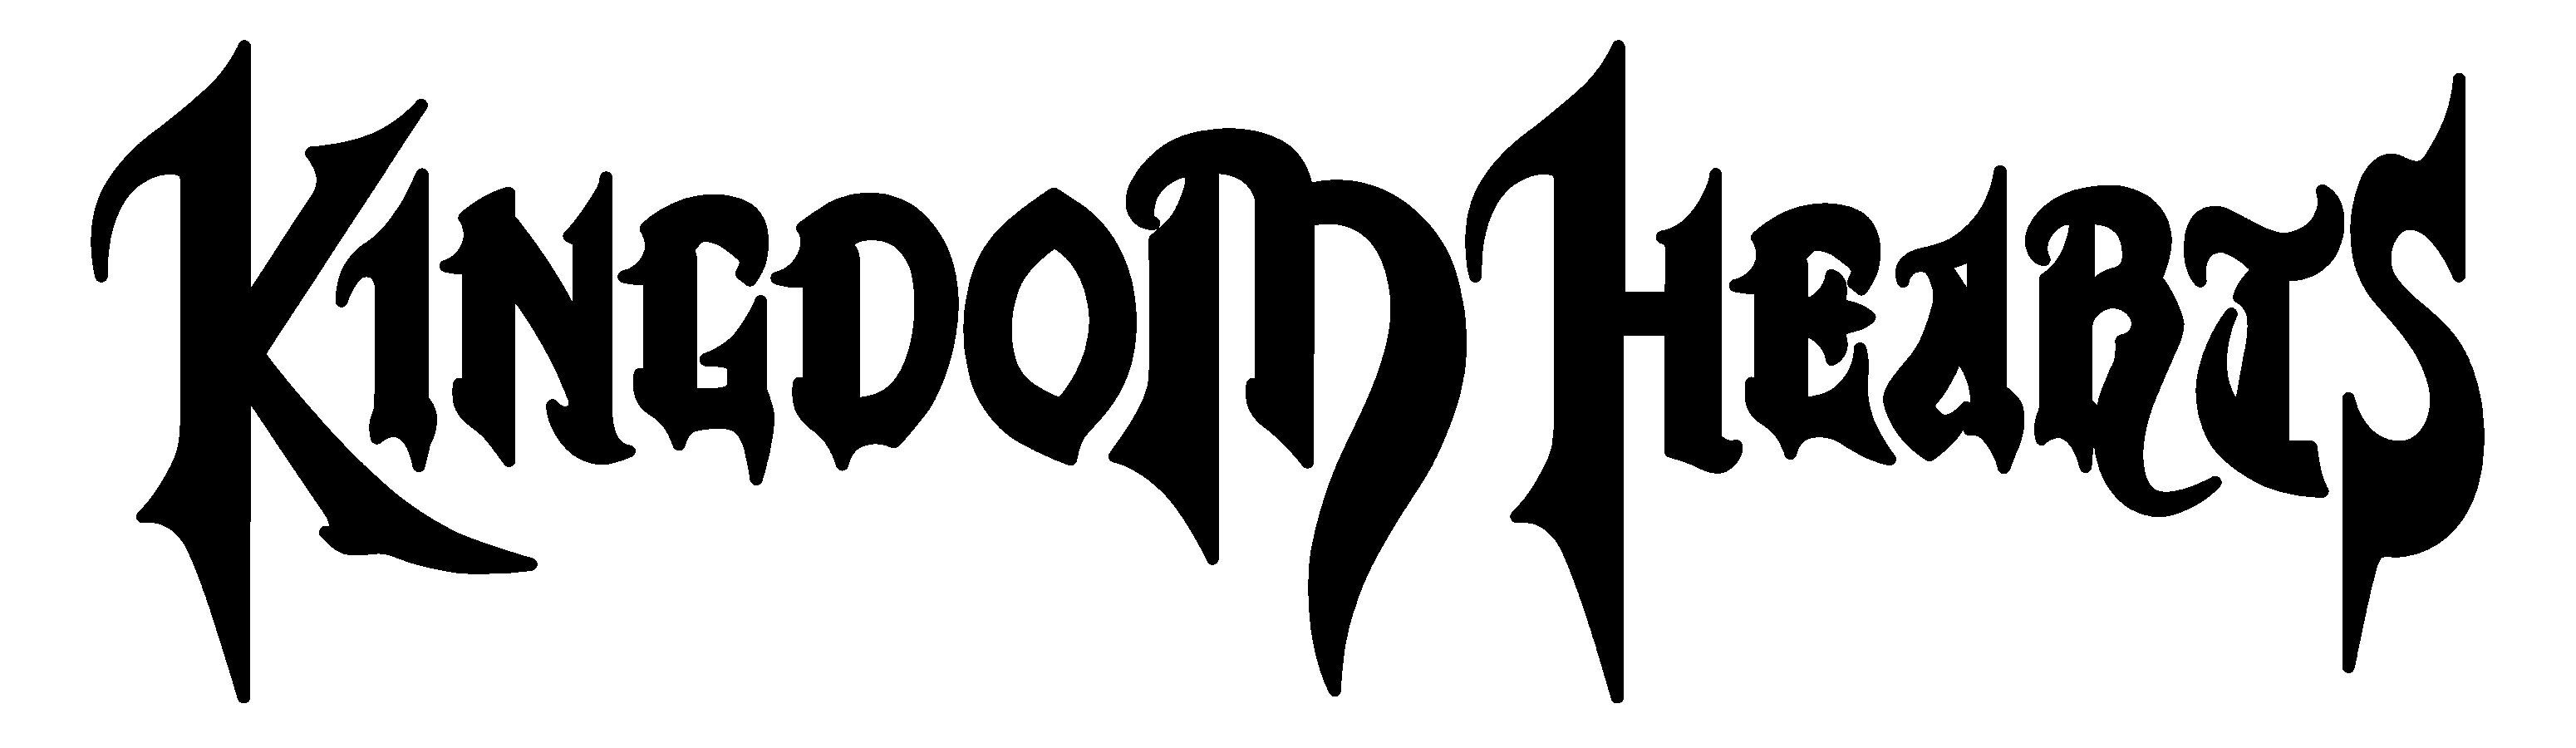 Kingdom hearts text png. File wordmark the first